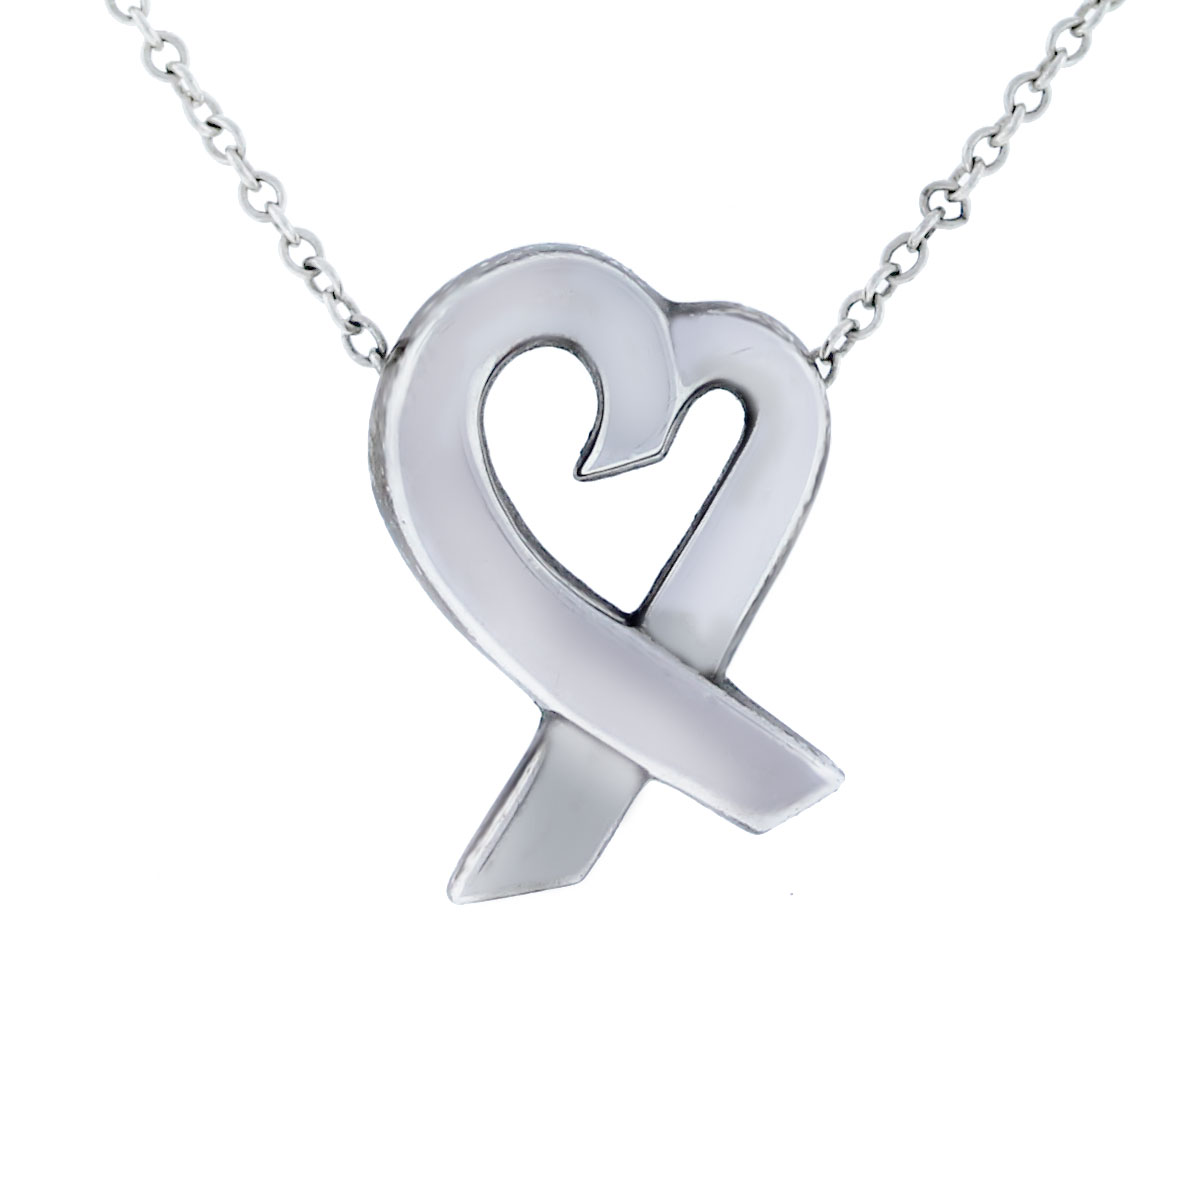 Tiffany & Co. Small Loving Heart Sterling Silver Pendant Necklace